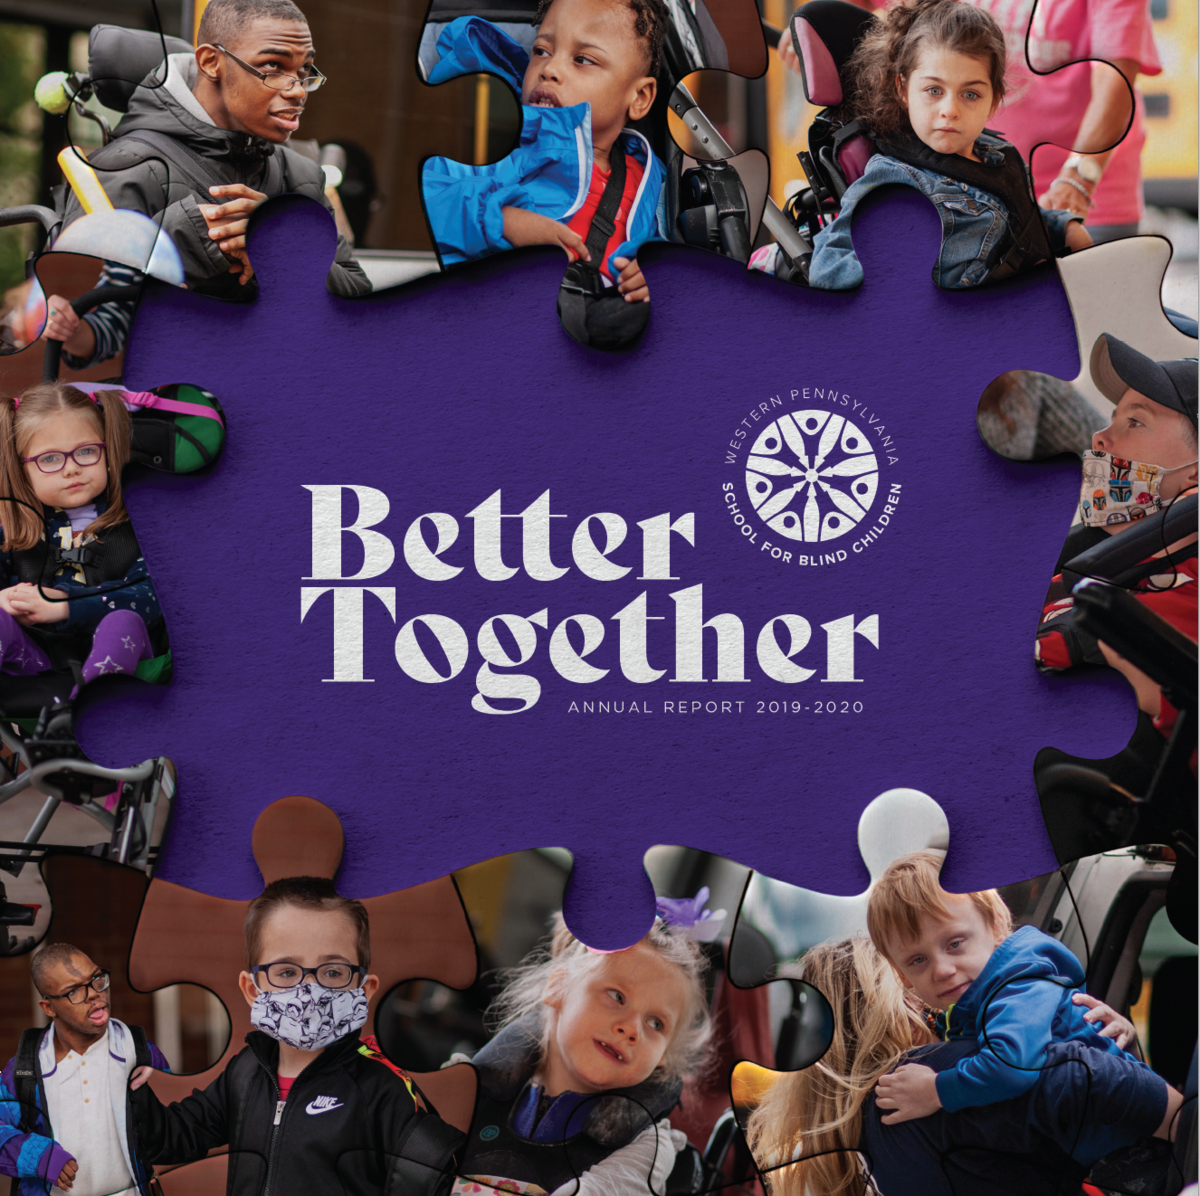 Front cover of Annual Report, a collage of student photos in the shape of puzzle pieces.